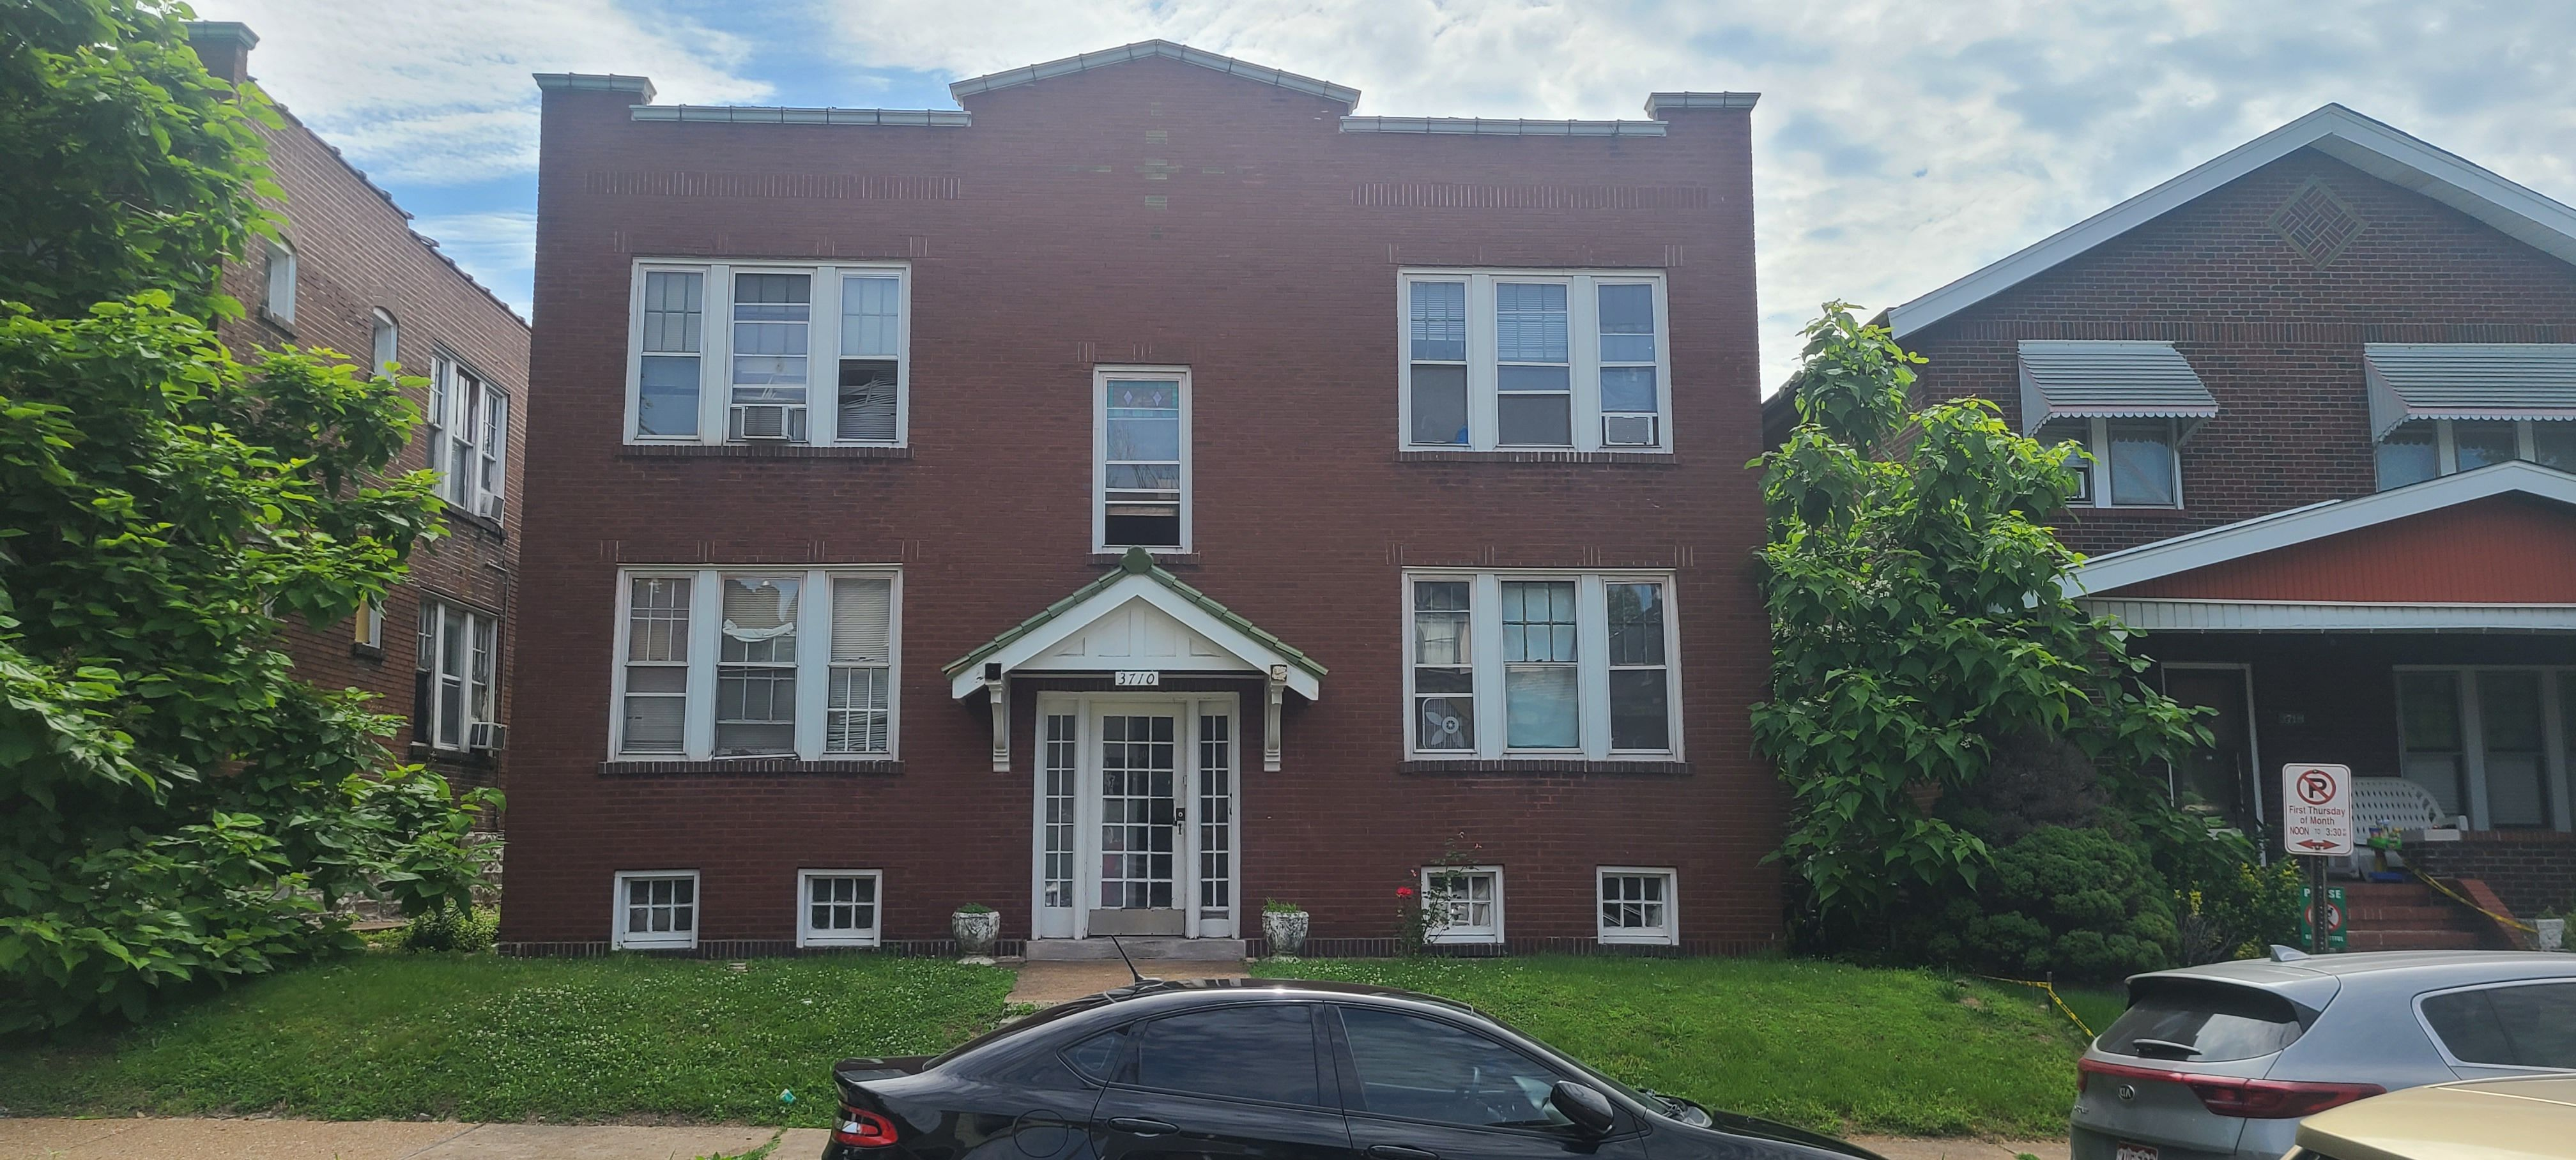 3710 Hydraulic Ave<br />St. Louis, MO